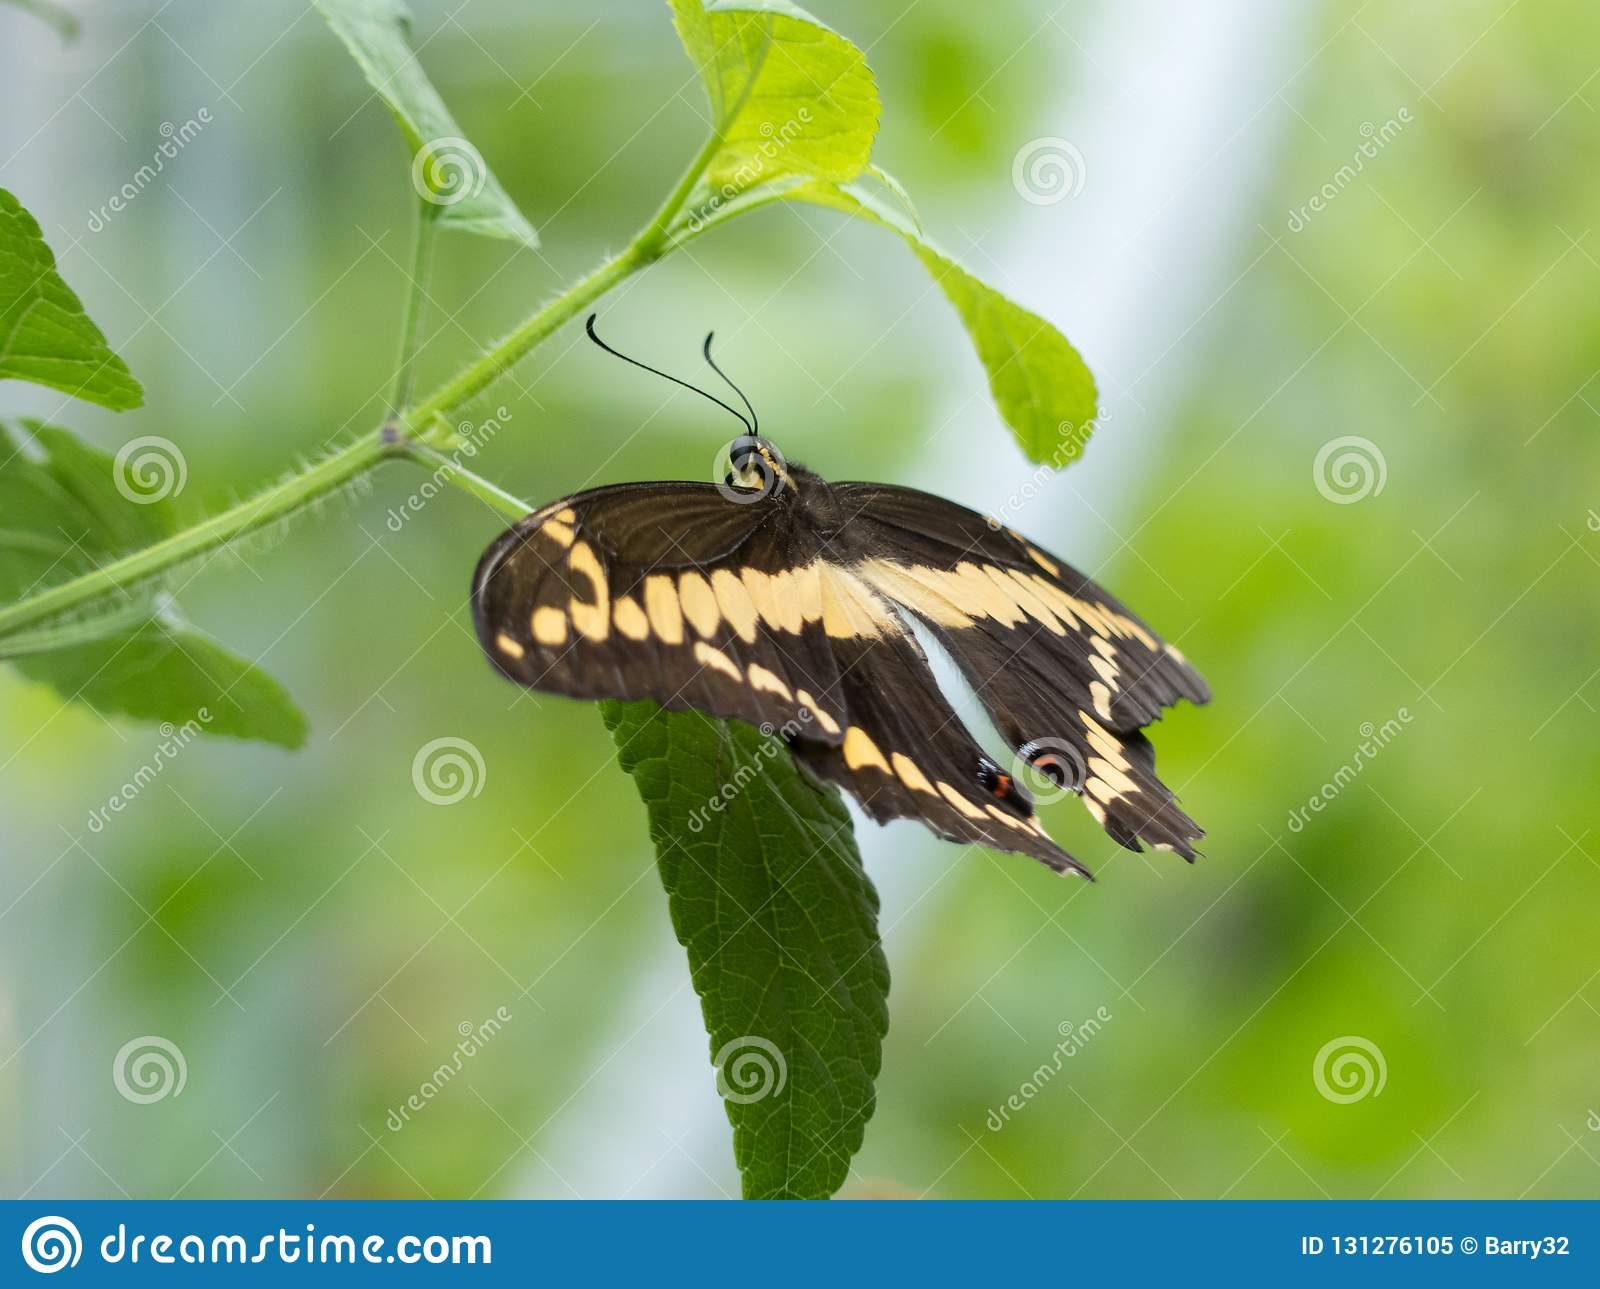 Giant Swallowtail butterfly on a green branch with smooth bokeh background